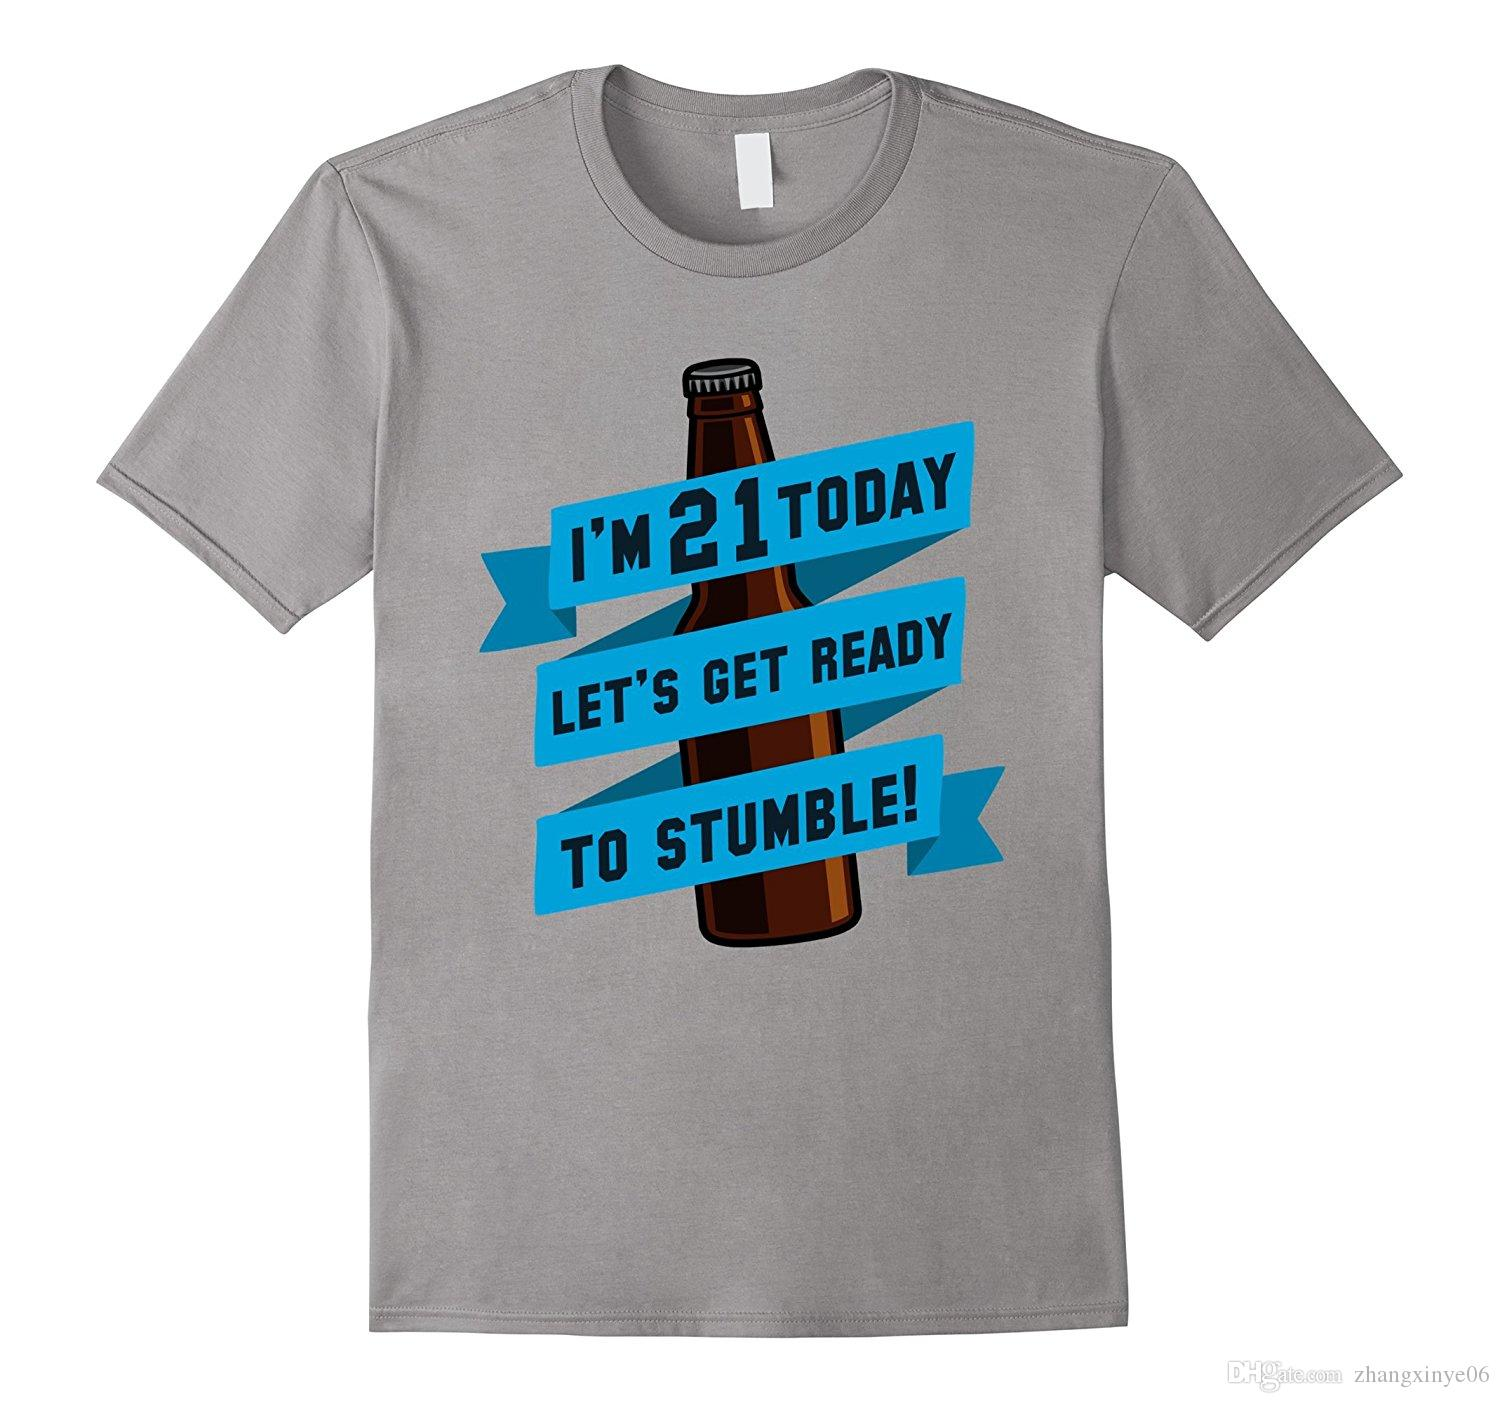 Im 21 Today Shirt Lets Get Ready To Stumble 21st Birthday T Site Online Tees From Zhangxinye06 1421